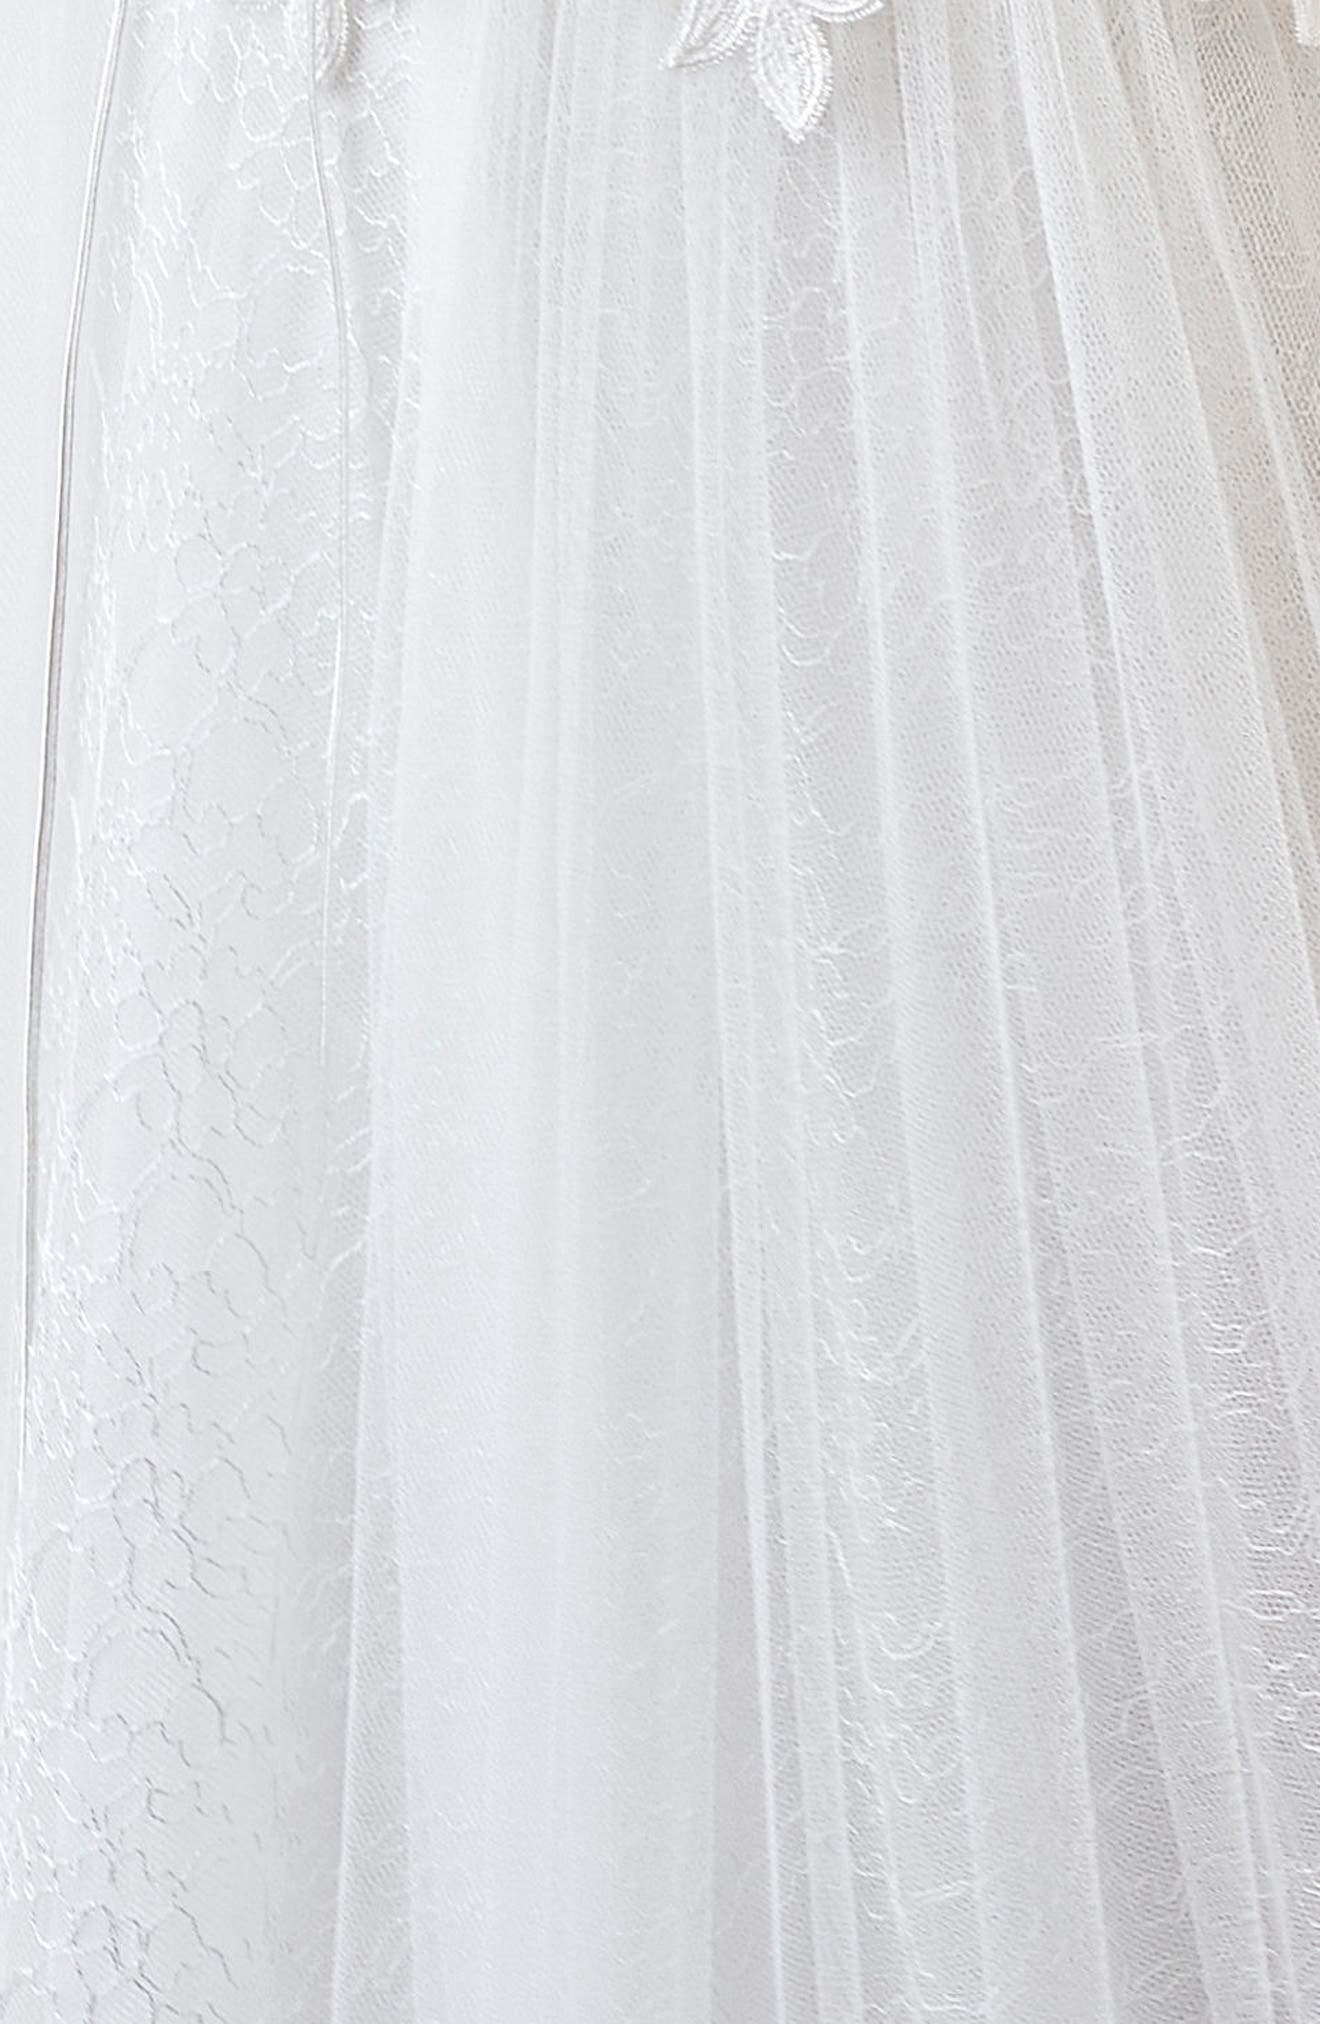 Inmaculada García Larimar Lace & Tulle A-Line Gown,                             Alternate thumbnail 3, color,                             Ivory